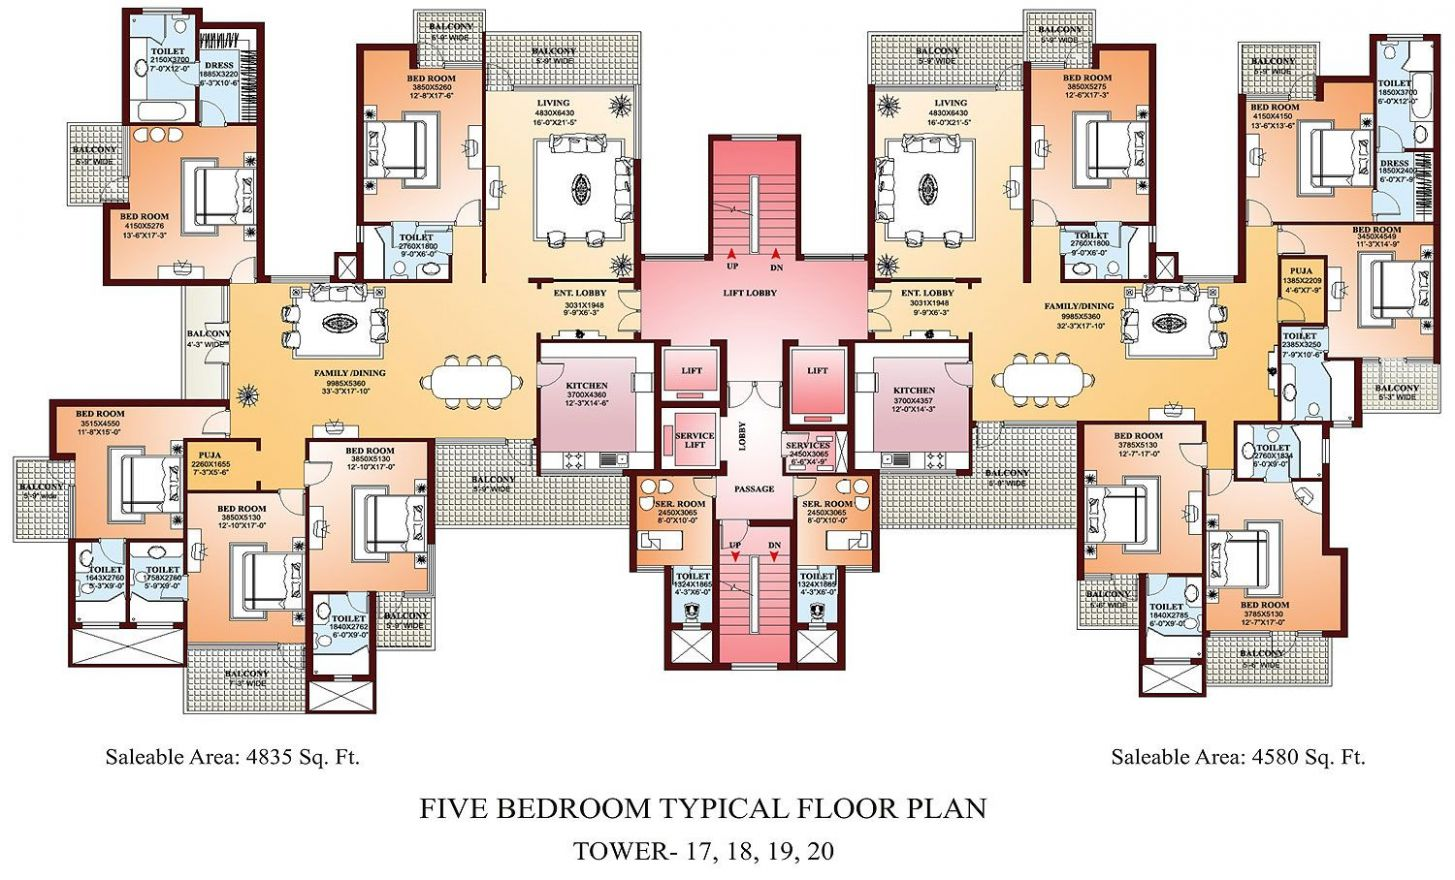 Apartment Floor Plans Designs (With images) | Condo floor plans ..